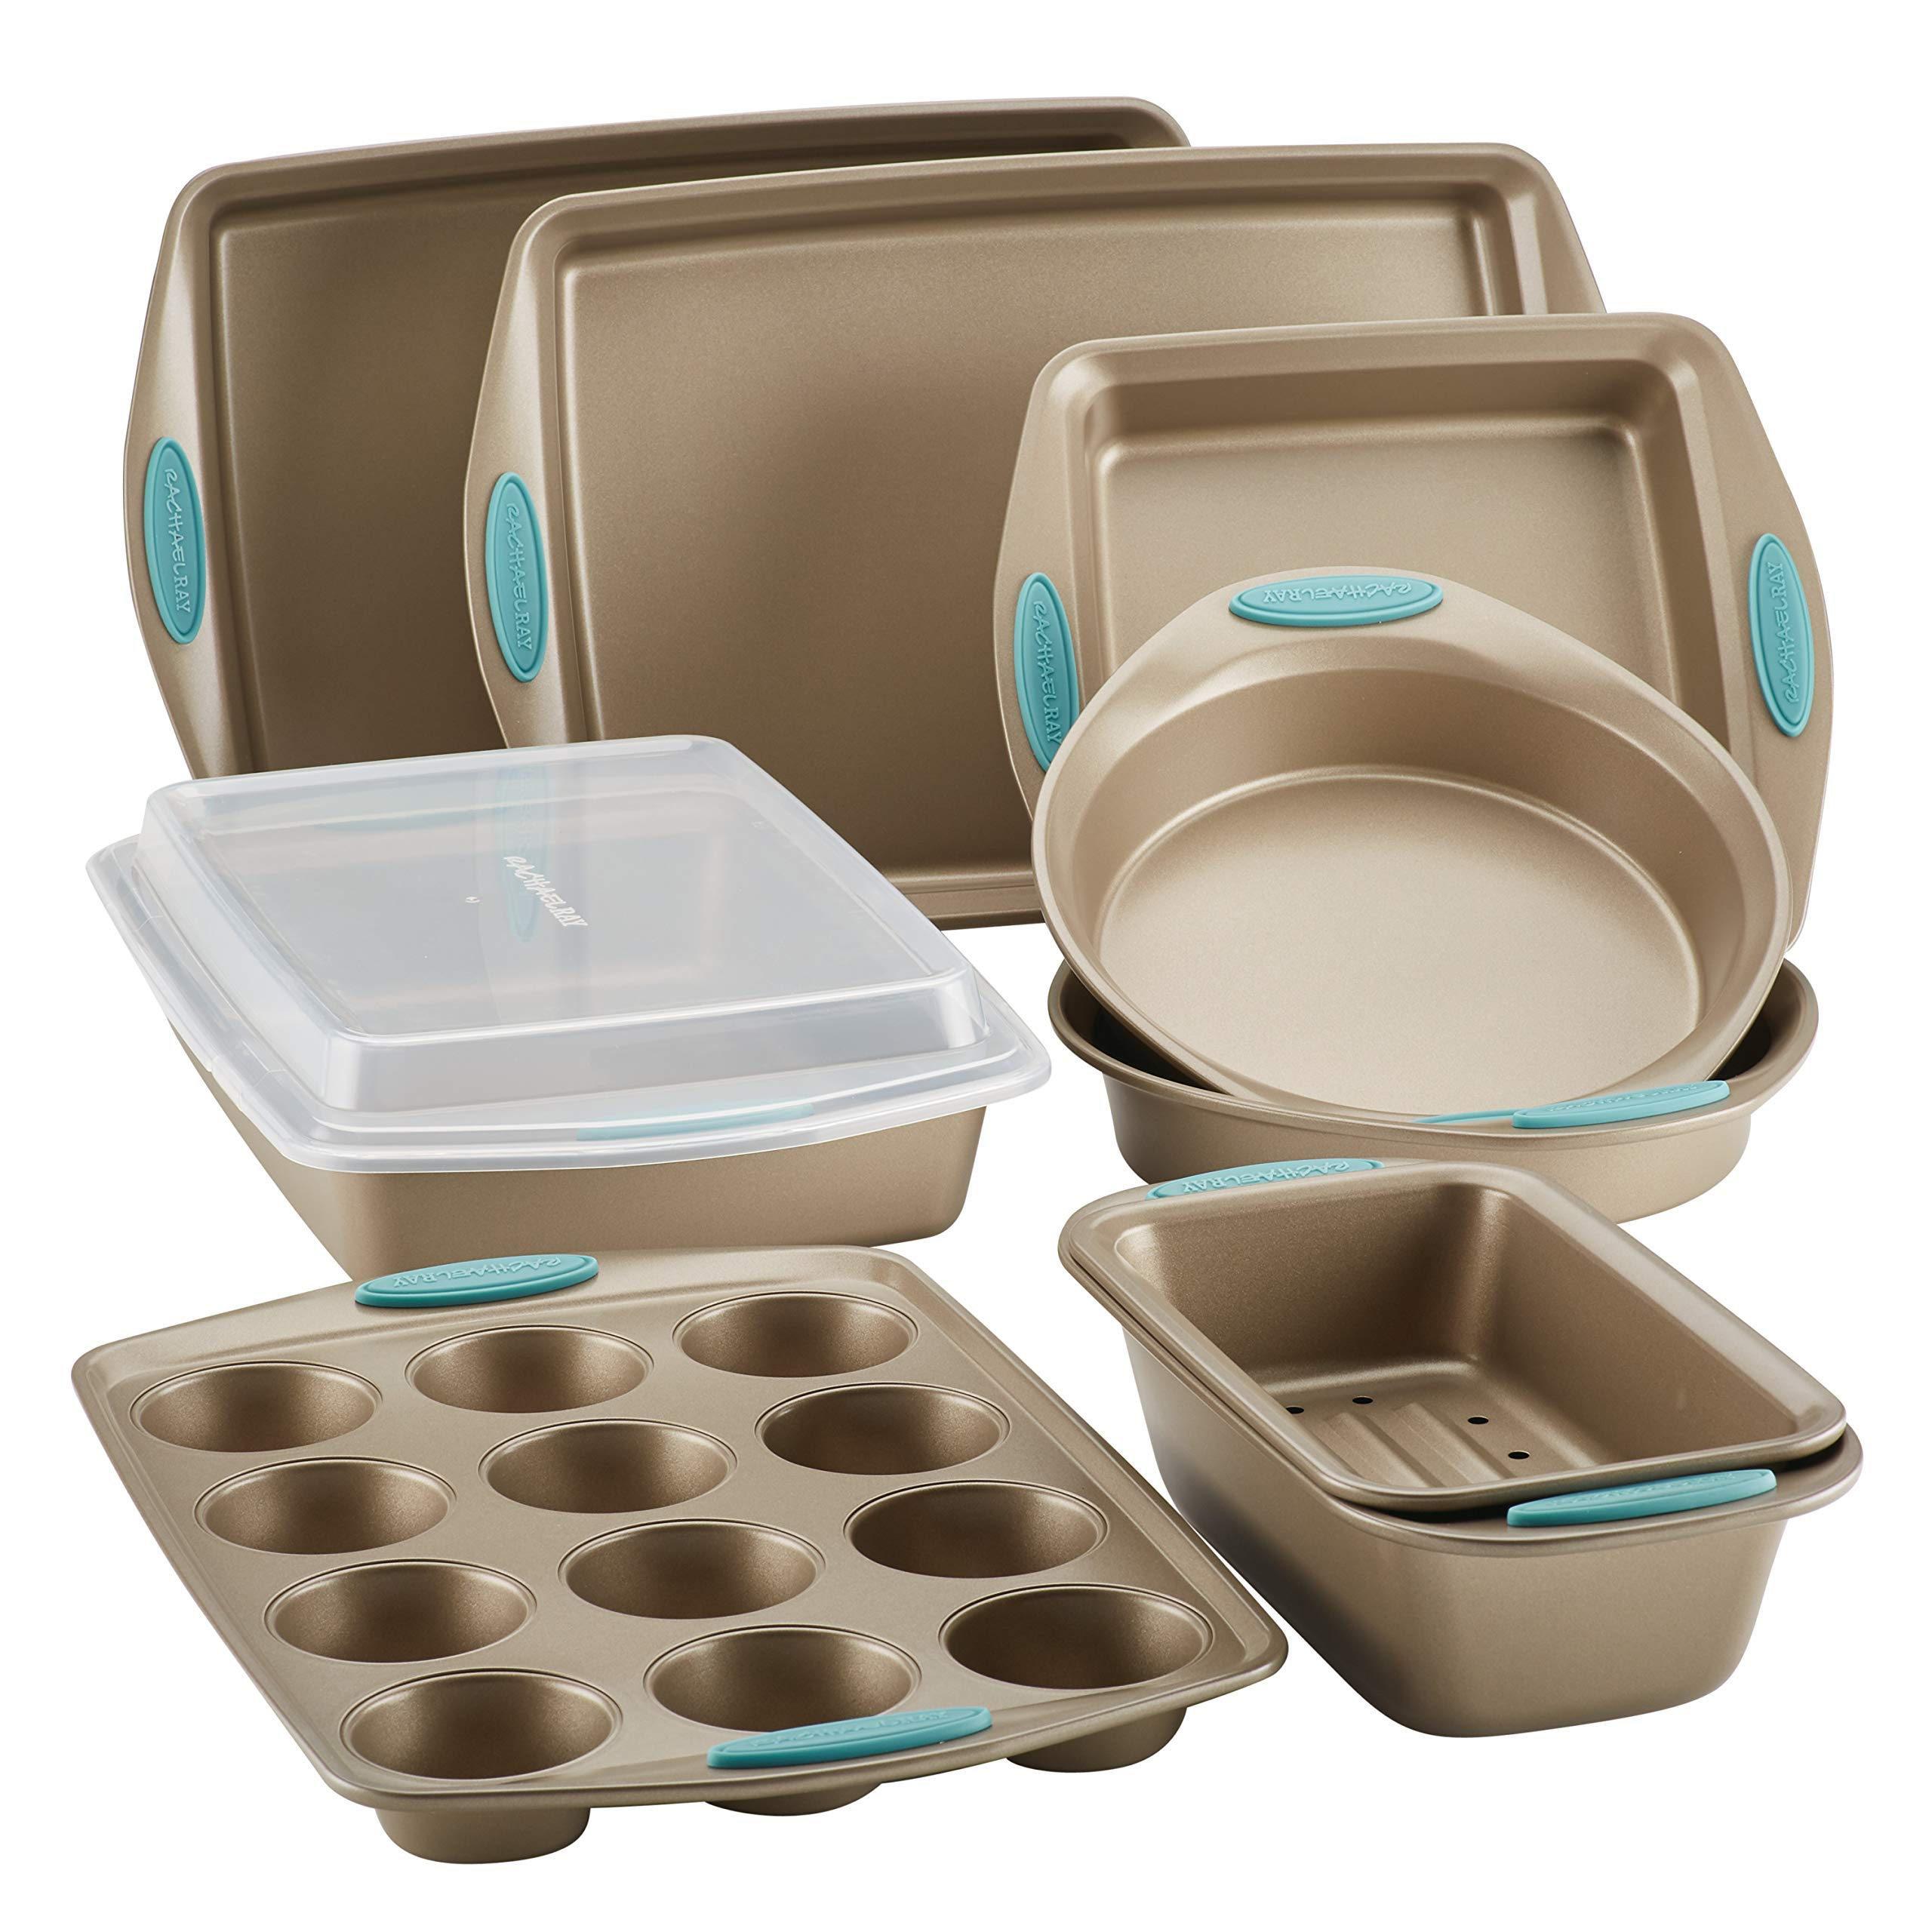 Rachael Ray Cucina Nonstick Bakeware Set, 10-Piece, Latte Brown with Agave Blue Handle Grips (Renewed)